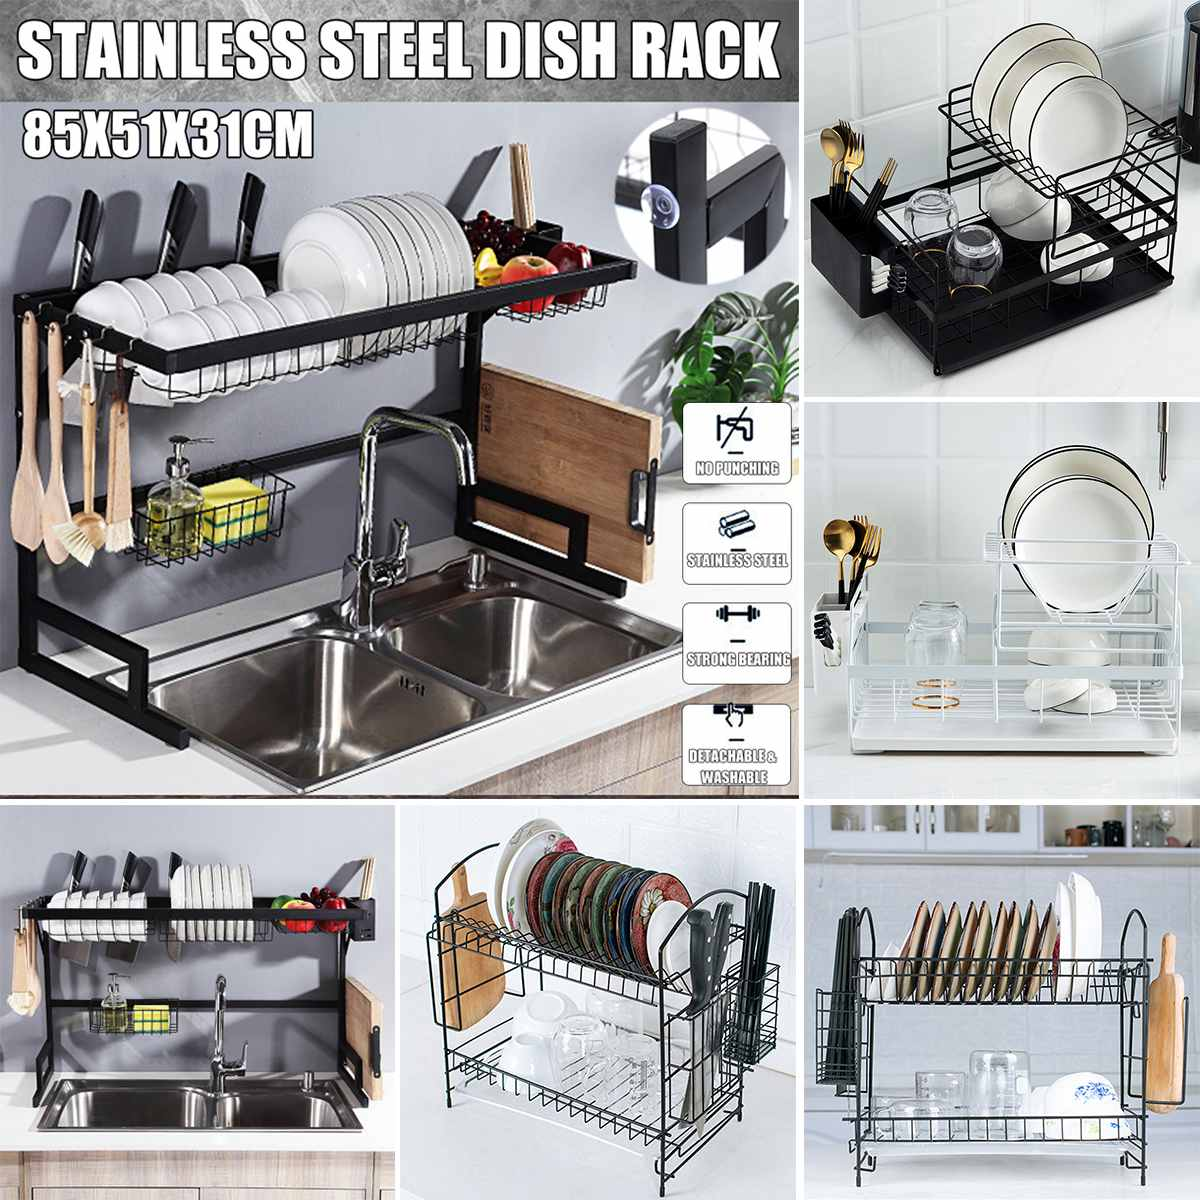 Shelf Knife Dish-Rack Fork-Container Sink-Supplies Storage Kitchen-Organizer Drying-Plate title=